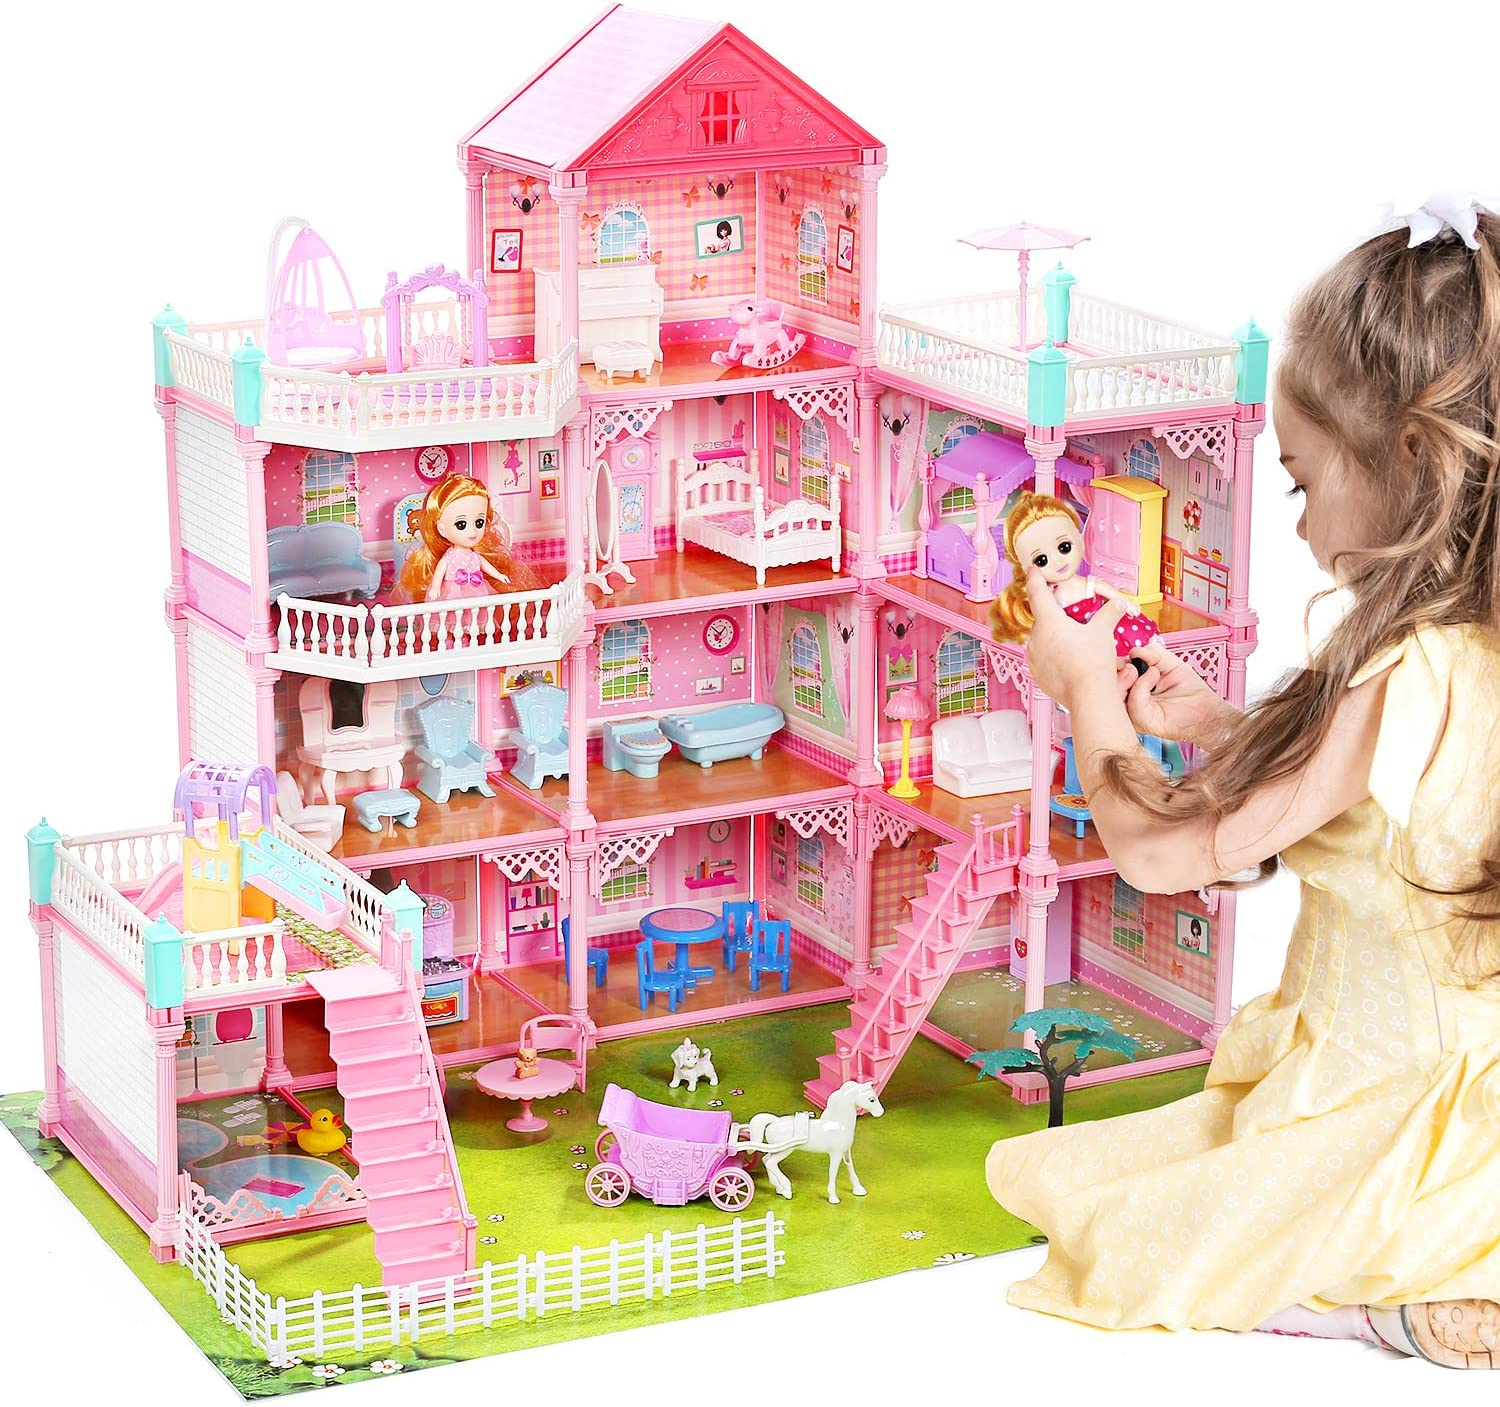 """CUTE STONE Huge Dream House Doll House Includes 2 Dolls, 32"""" x 28"""" Dollhouse Dreamhouse with 11 Rooms and Furniture, Doll Accessories, Gift for Girls and Toddlers"""